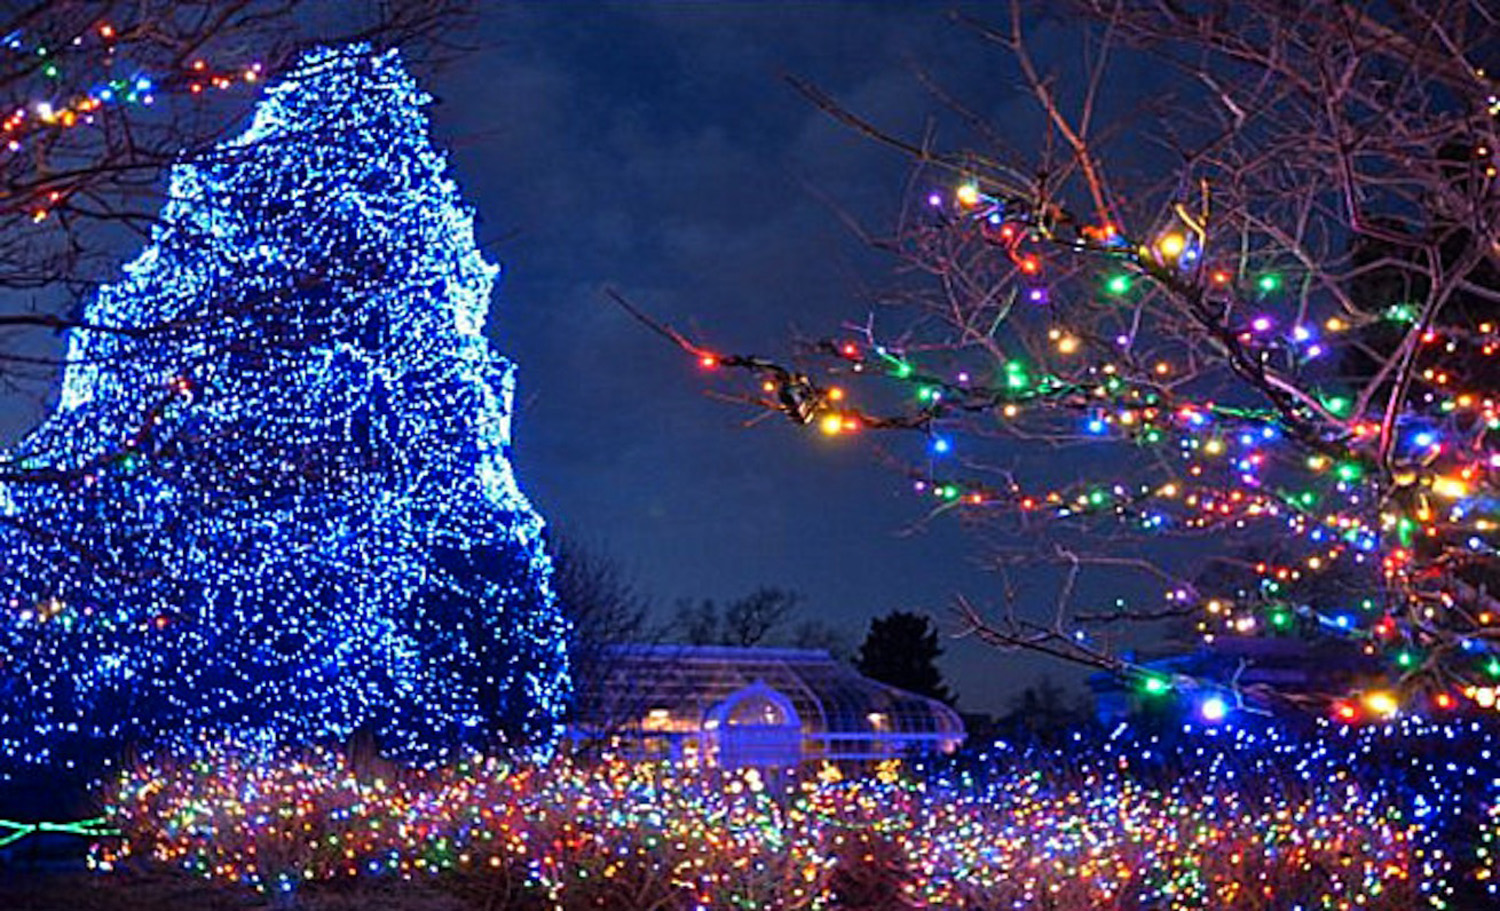 The 8 Most Beautiful Christmas Trees in America - American Profile